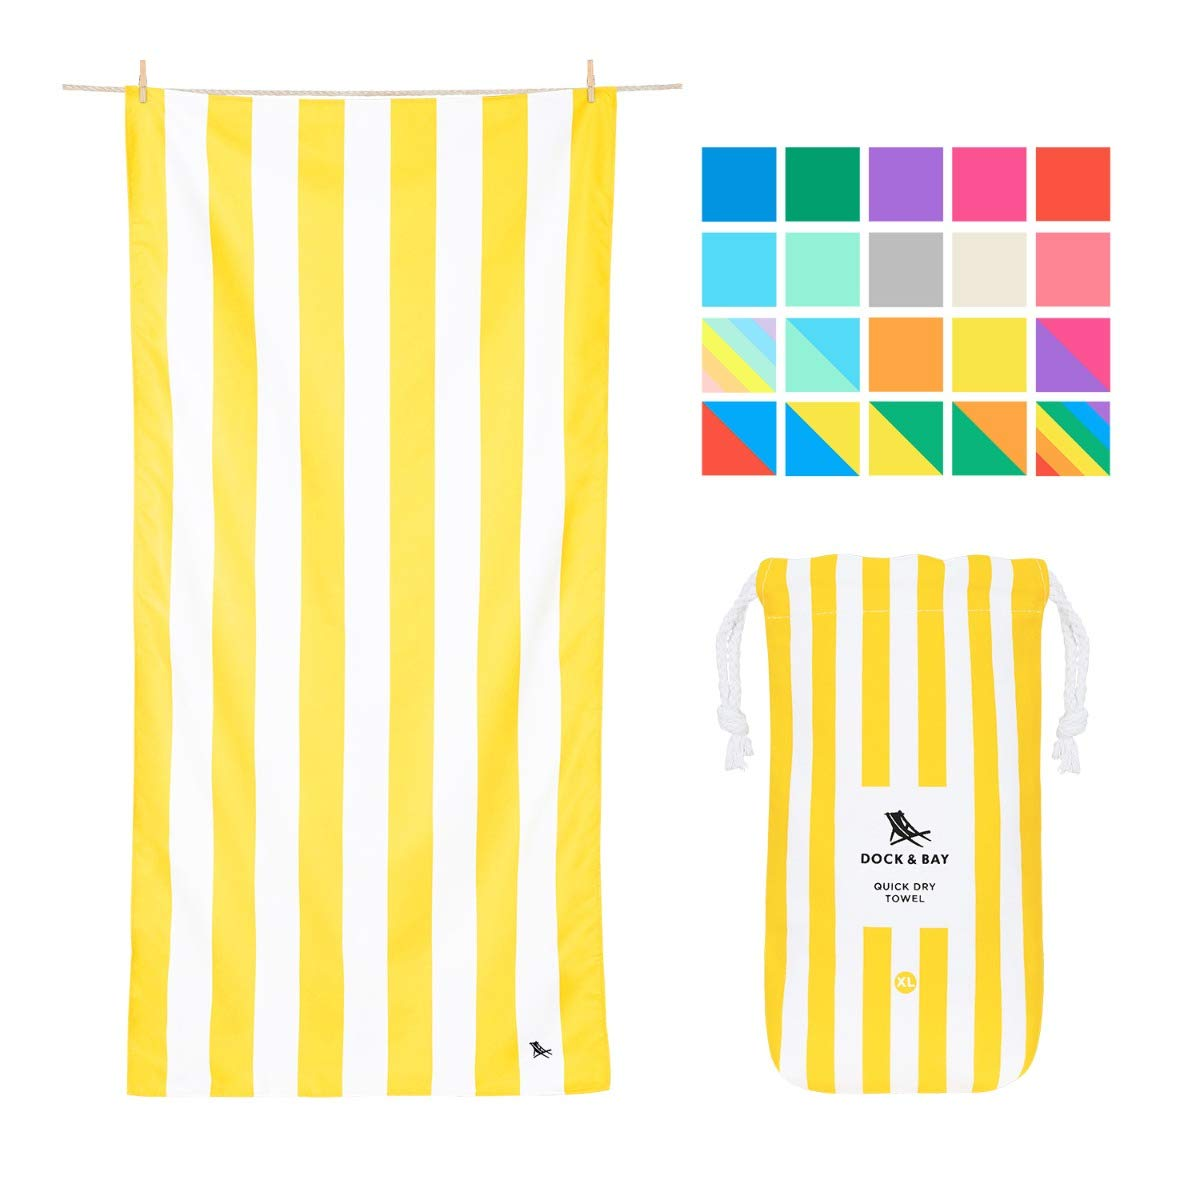 Microfibre Striped Oversized Beach Towels - Boracay Yellow, Extra Large (200x90cm, 78x35) - XL Compact Towel, Fast Drying, Beach Umbrella mat